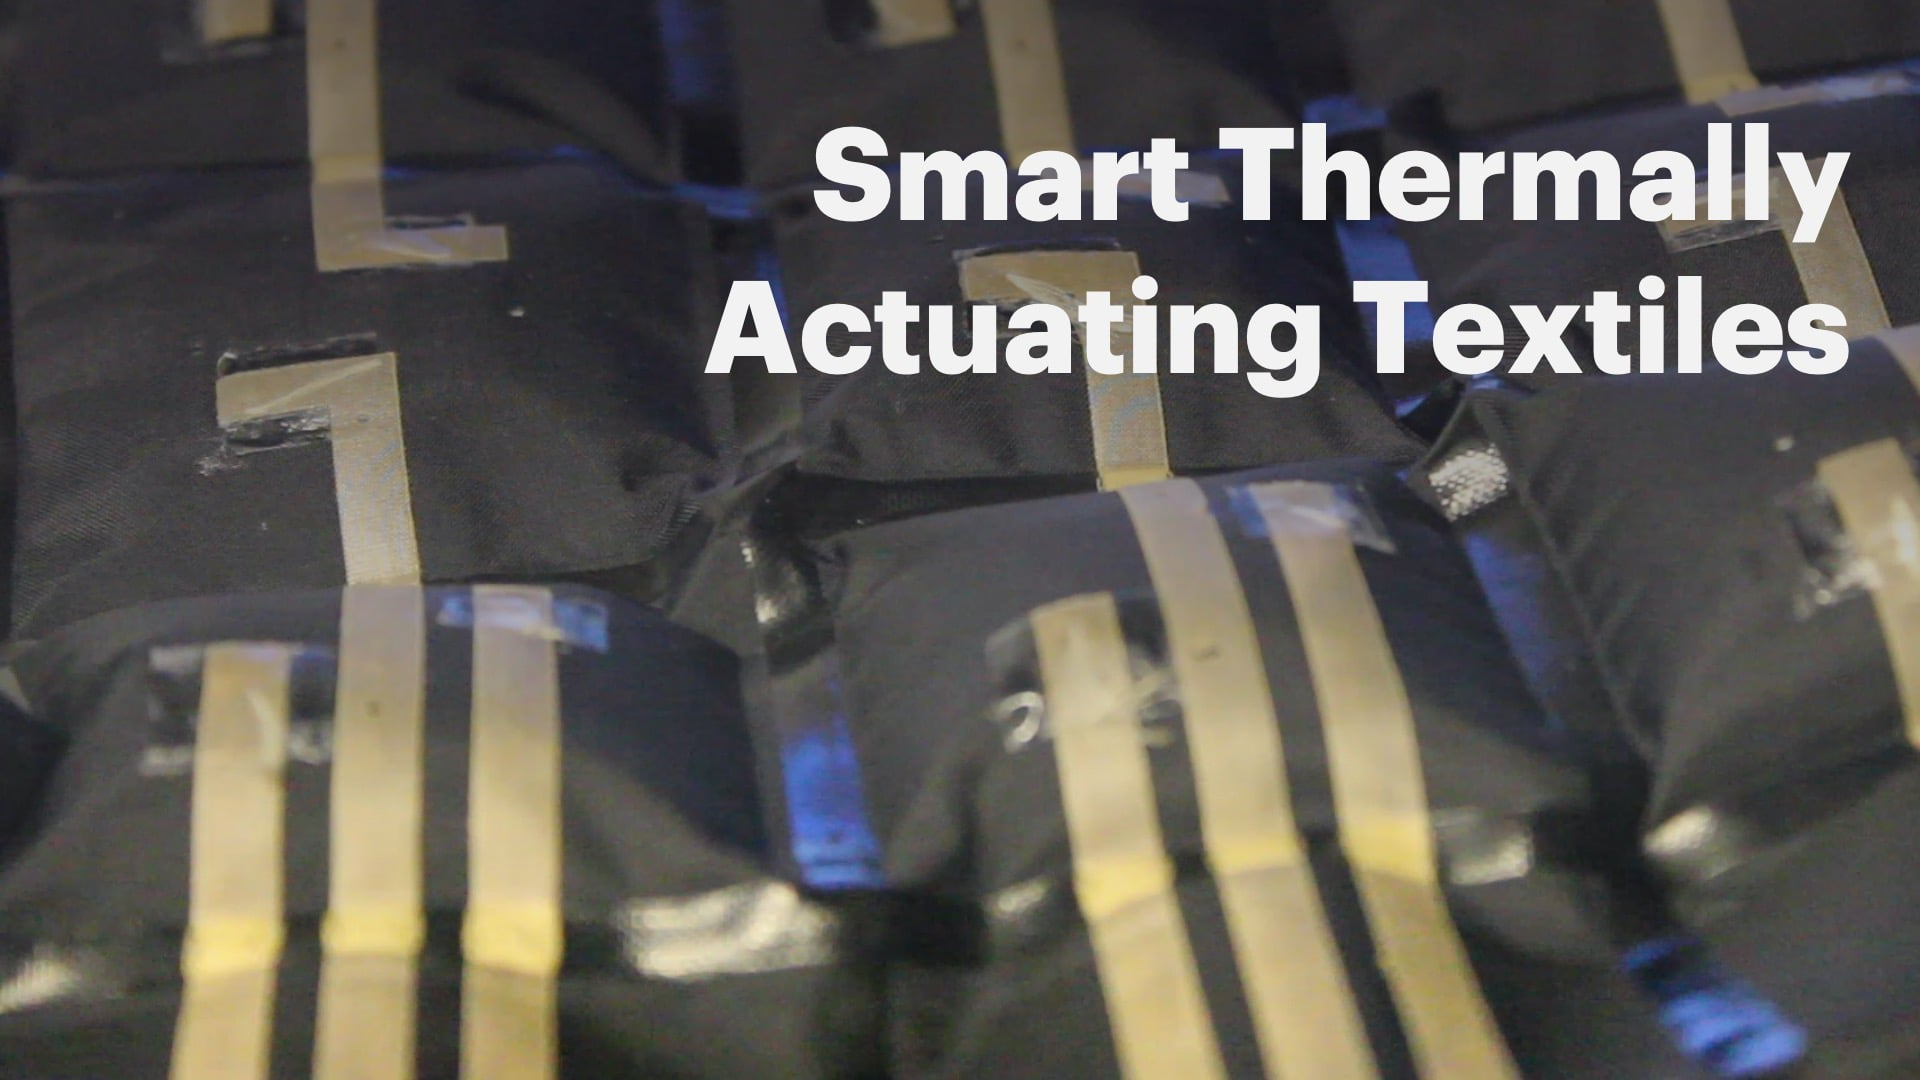 Smart Thermally Actuating Textiles